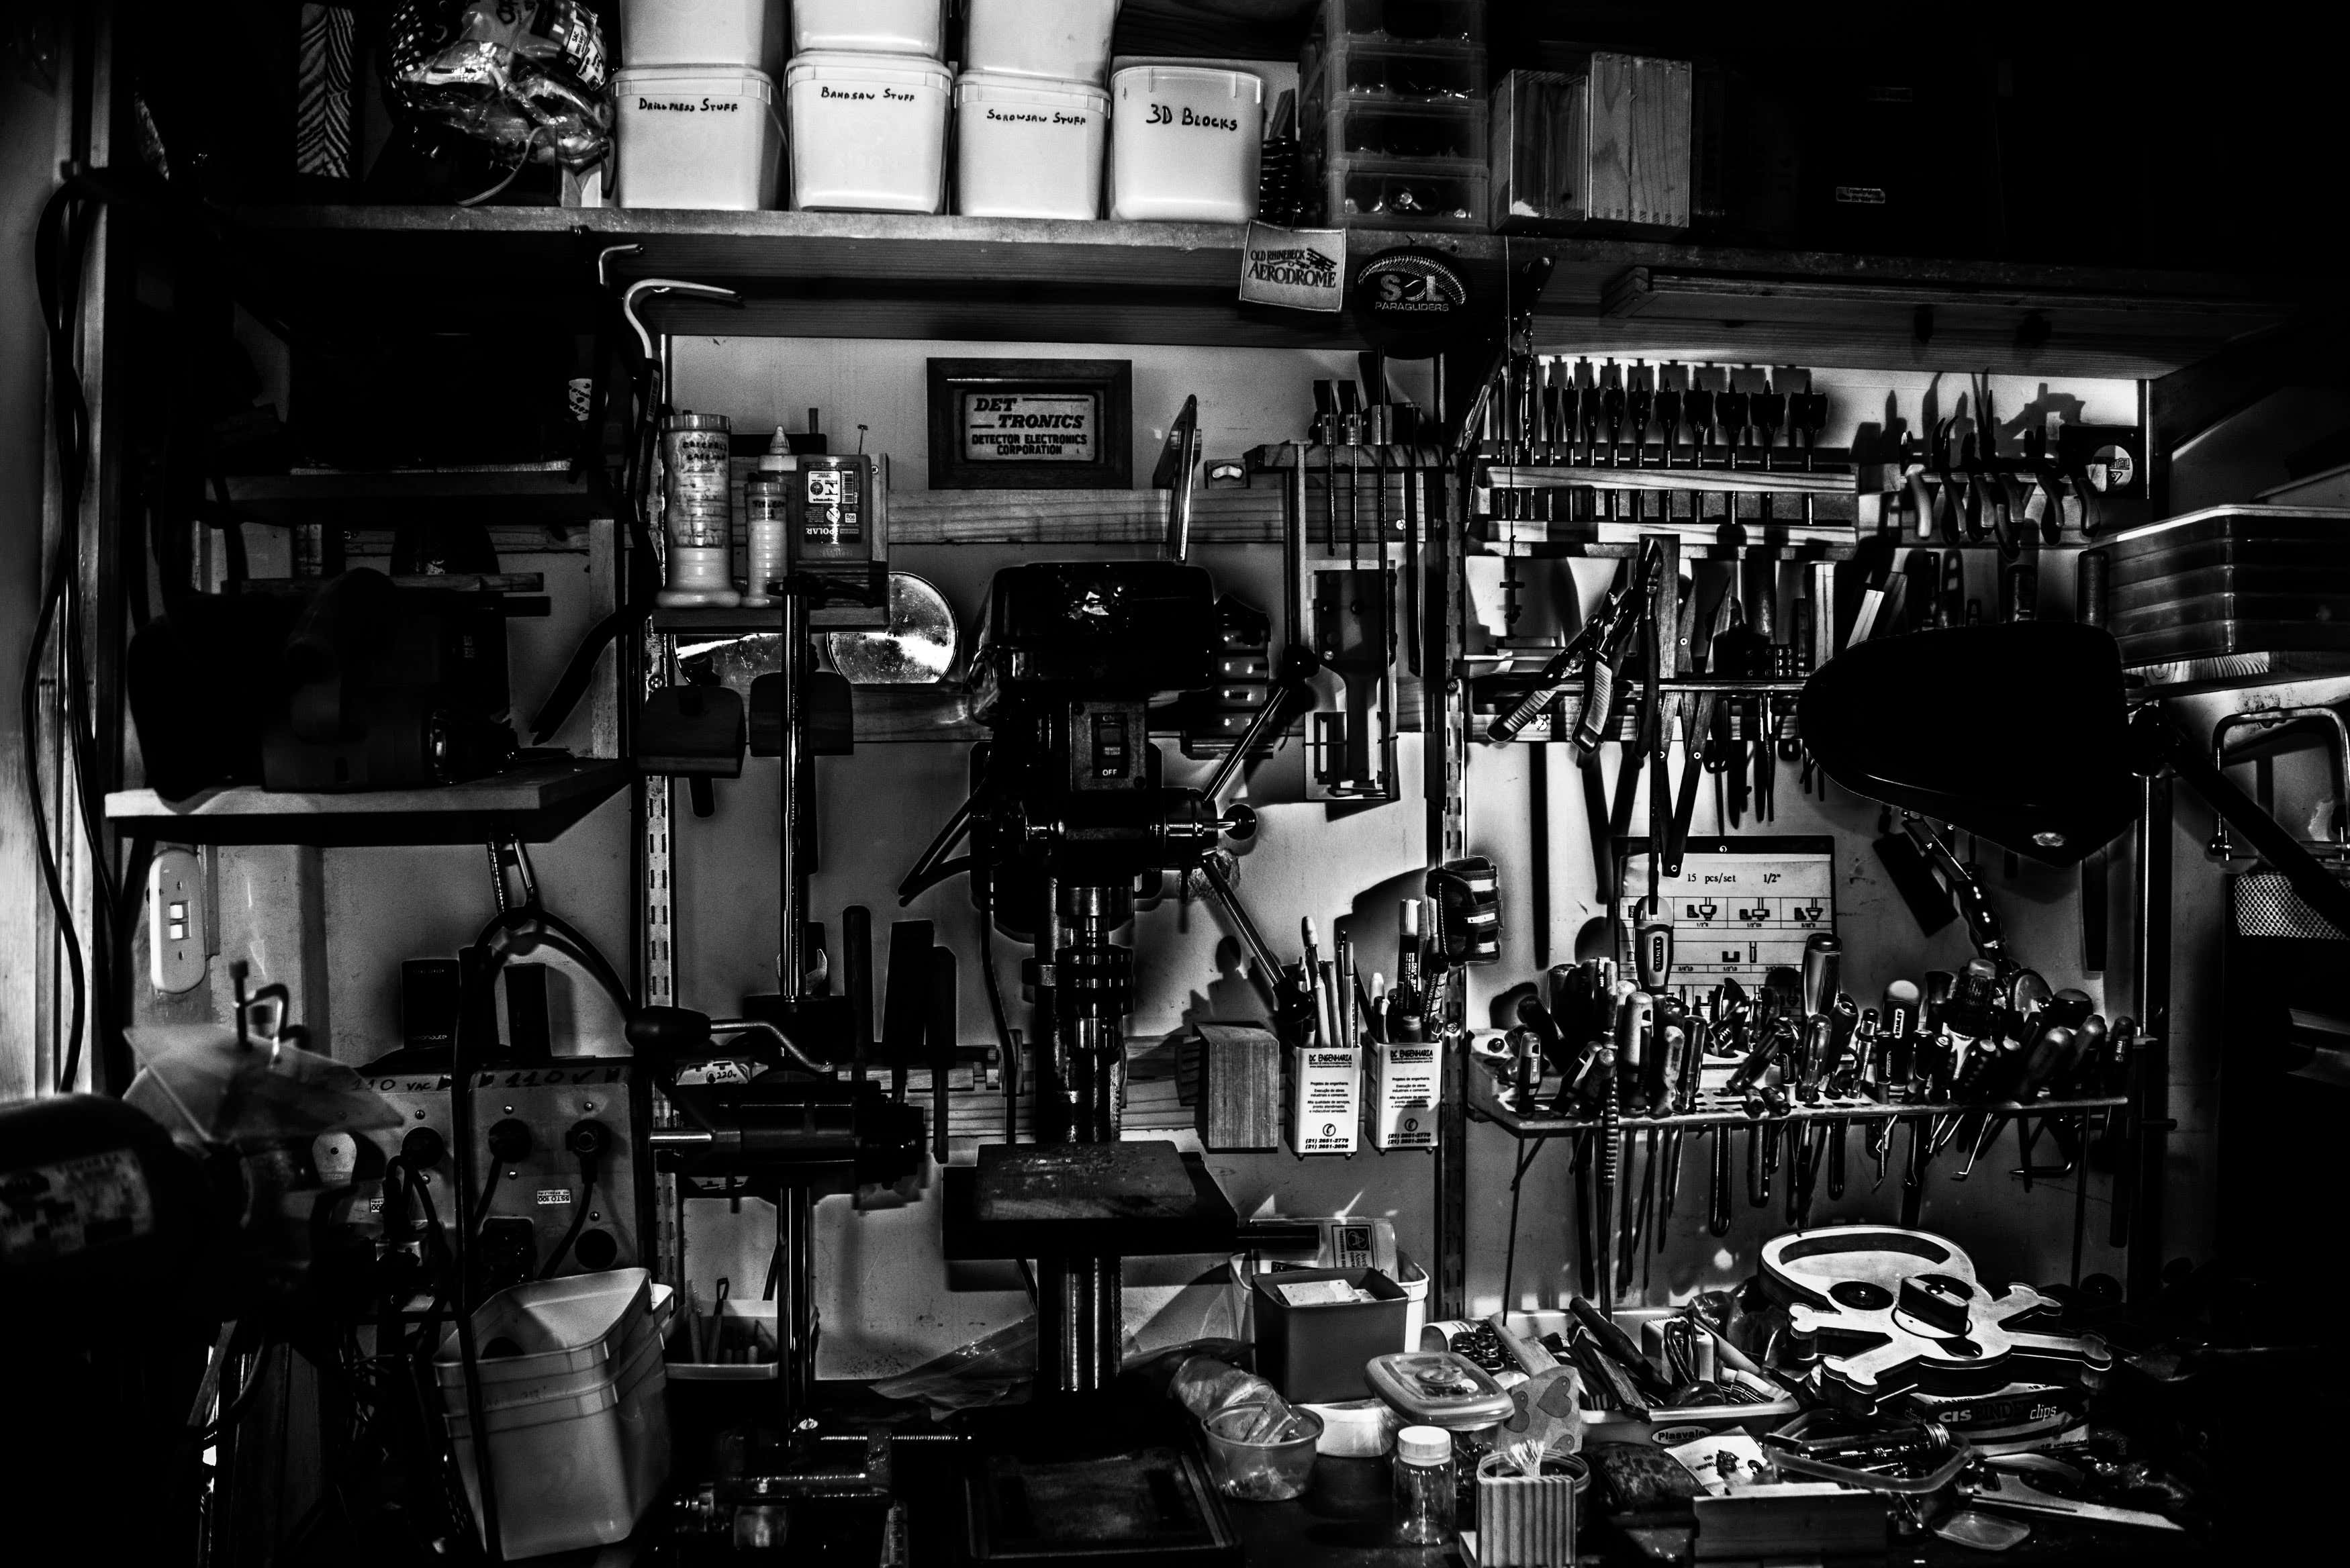 A black and white image showing garage shelving with a variety of tools.